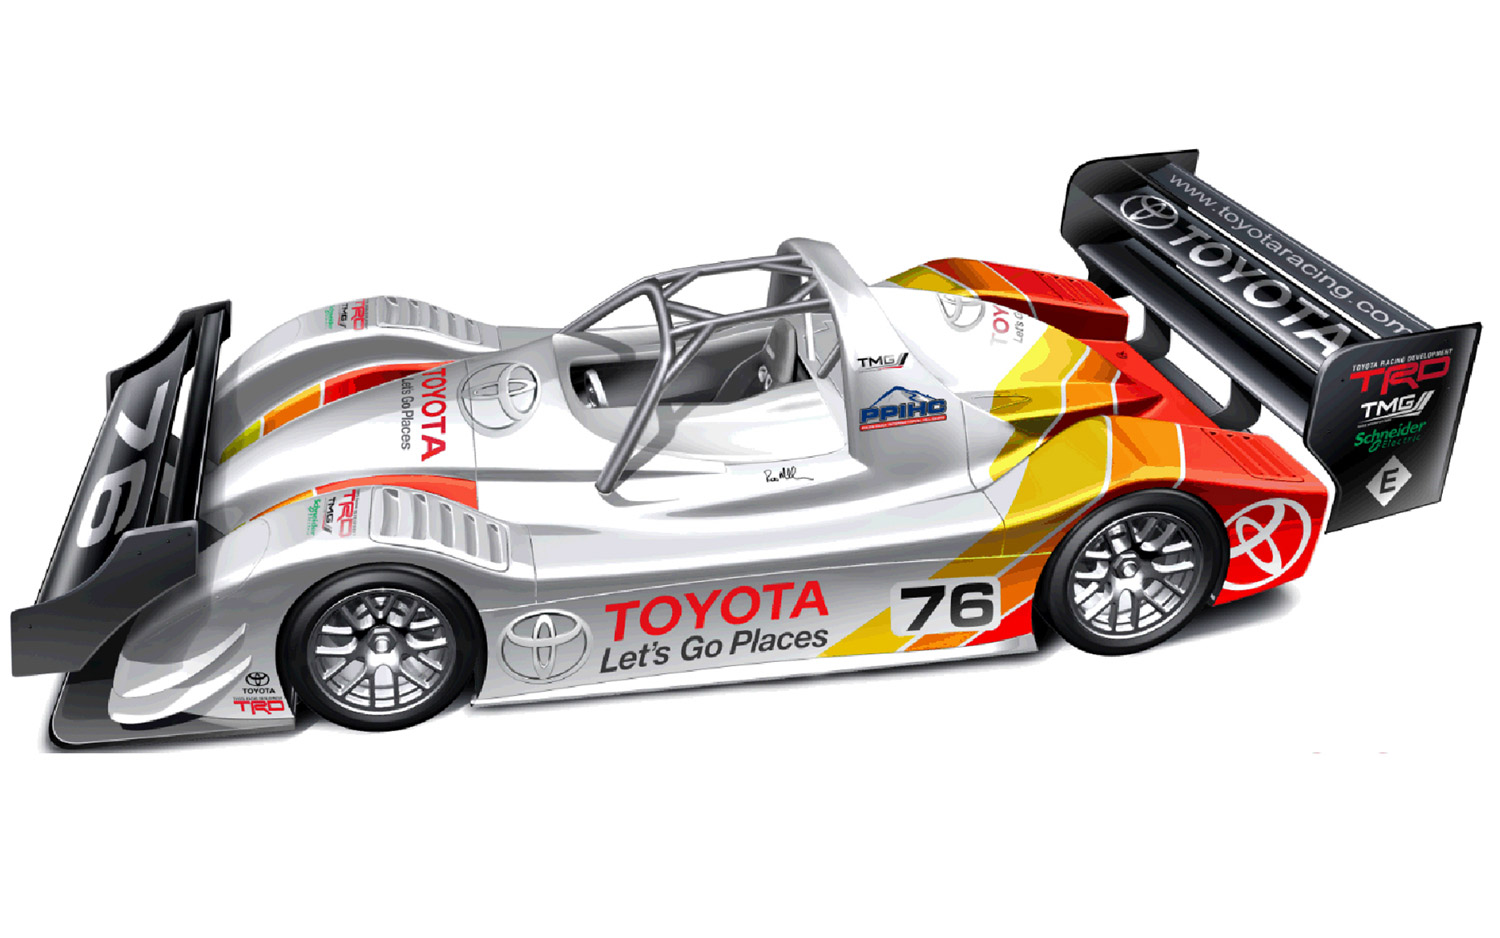 Motorsports Toyota Returning to Pikes Peak With Revised 536-HP Electric Car.  Article by Jake Holmes posted May 9, 2013